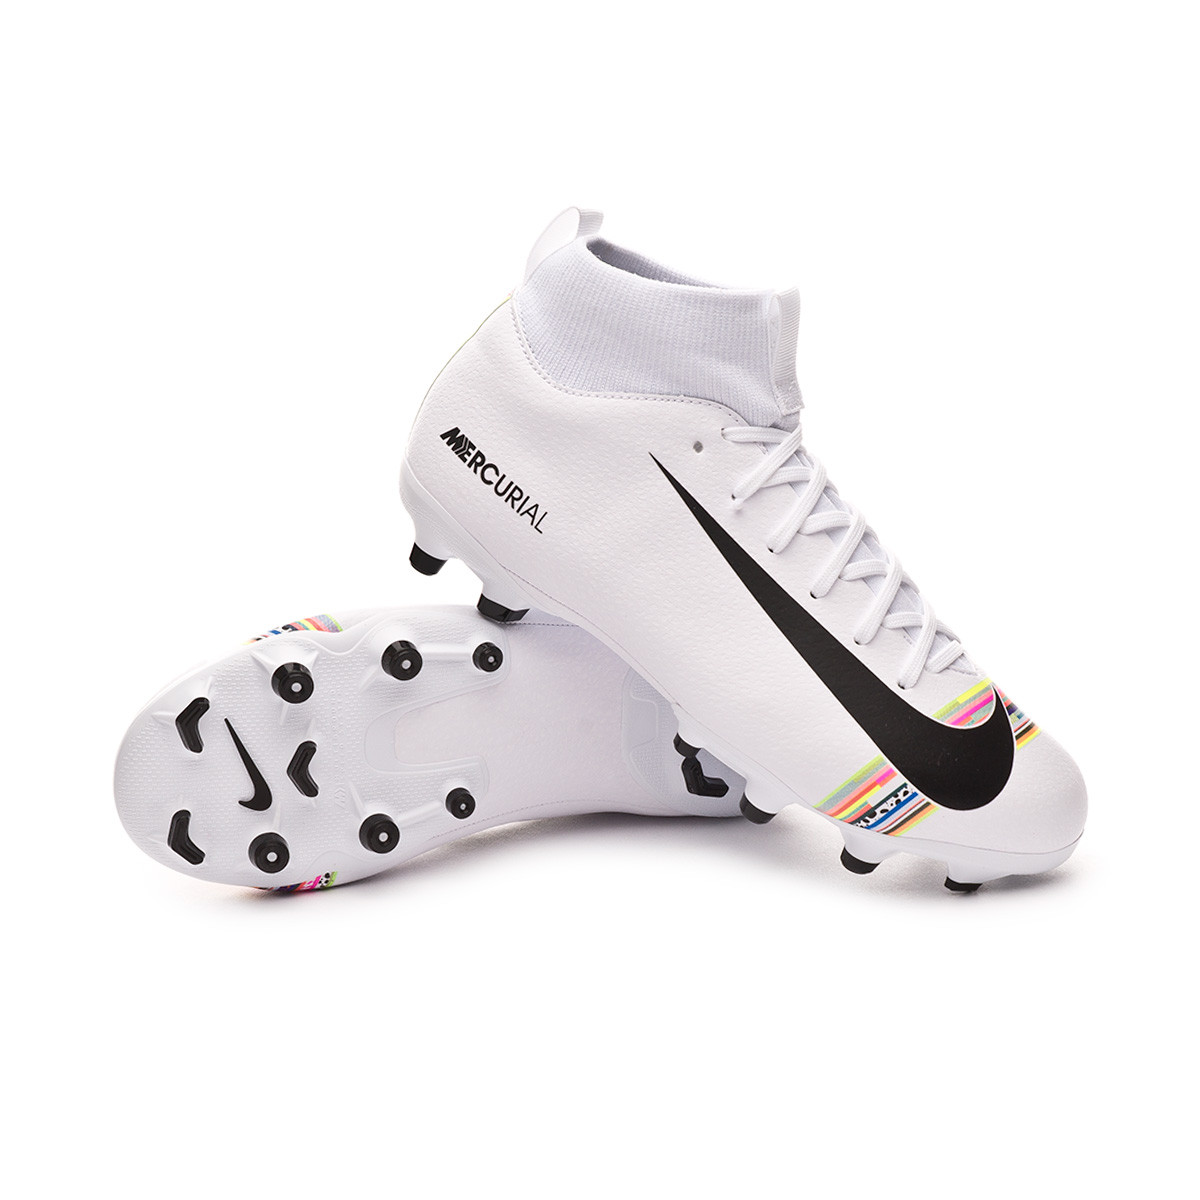 info for 3d3d7 1fafb Bota Mercurial Superfly VI Academy LVL UP MG Niño White-Black-Pure platinum